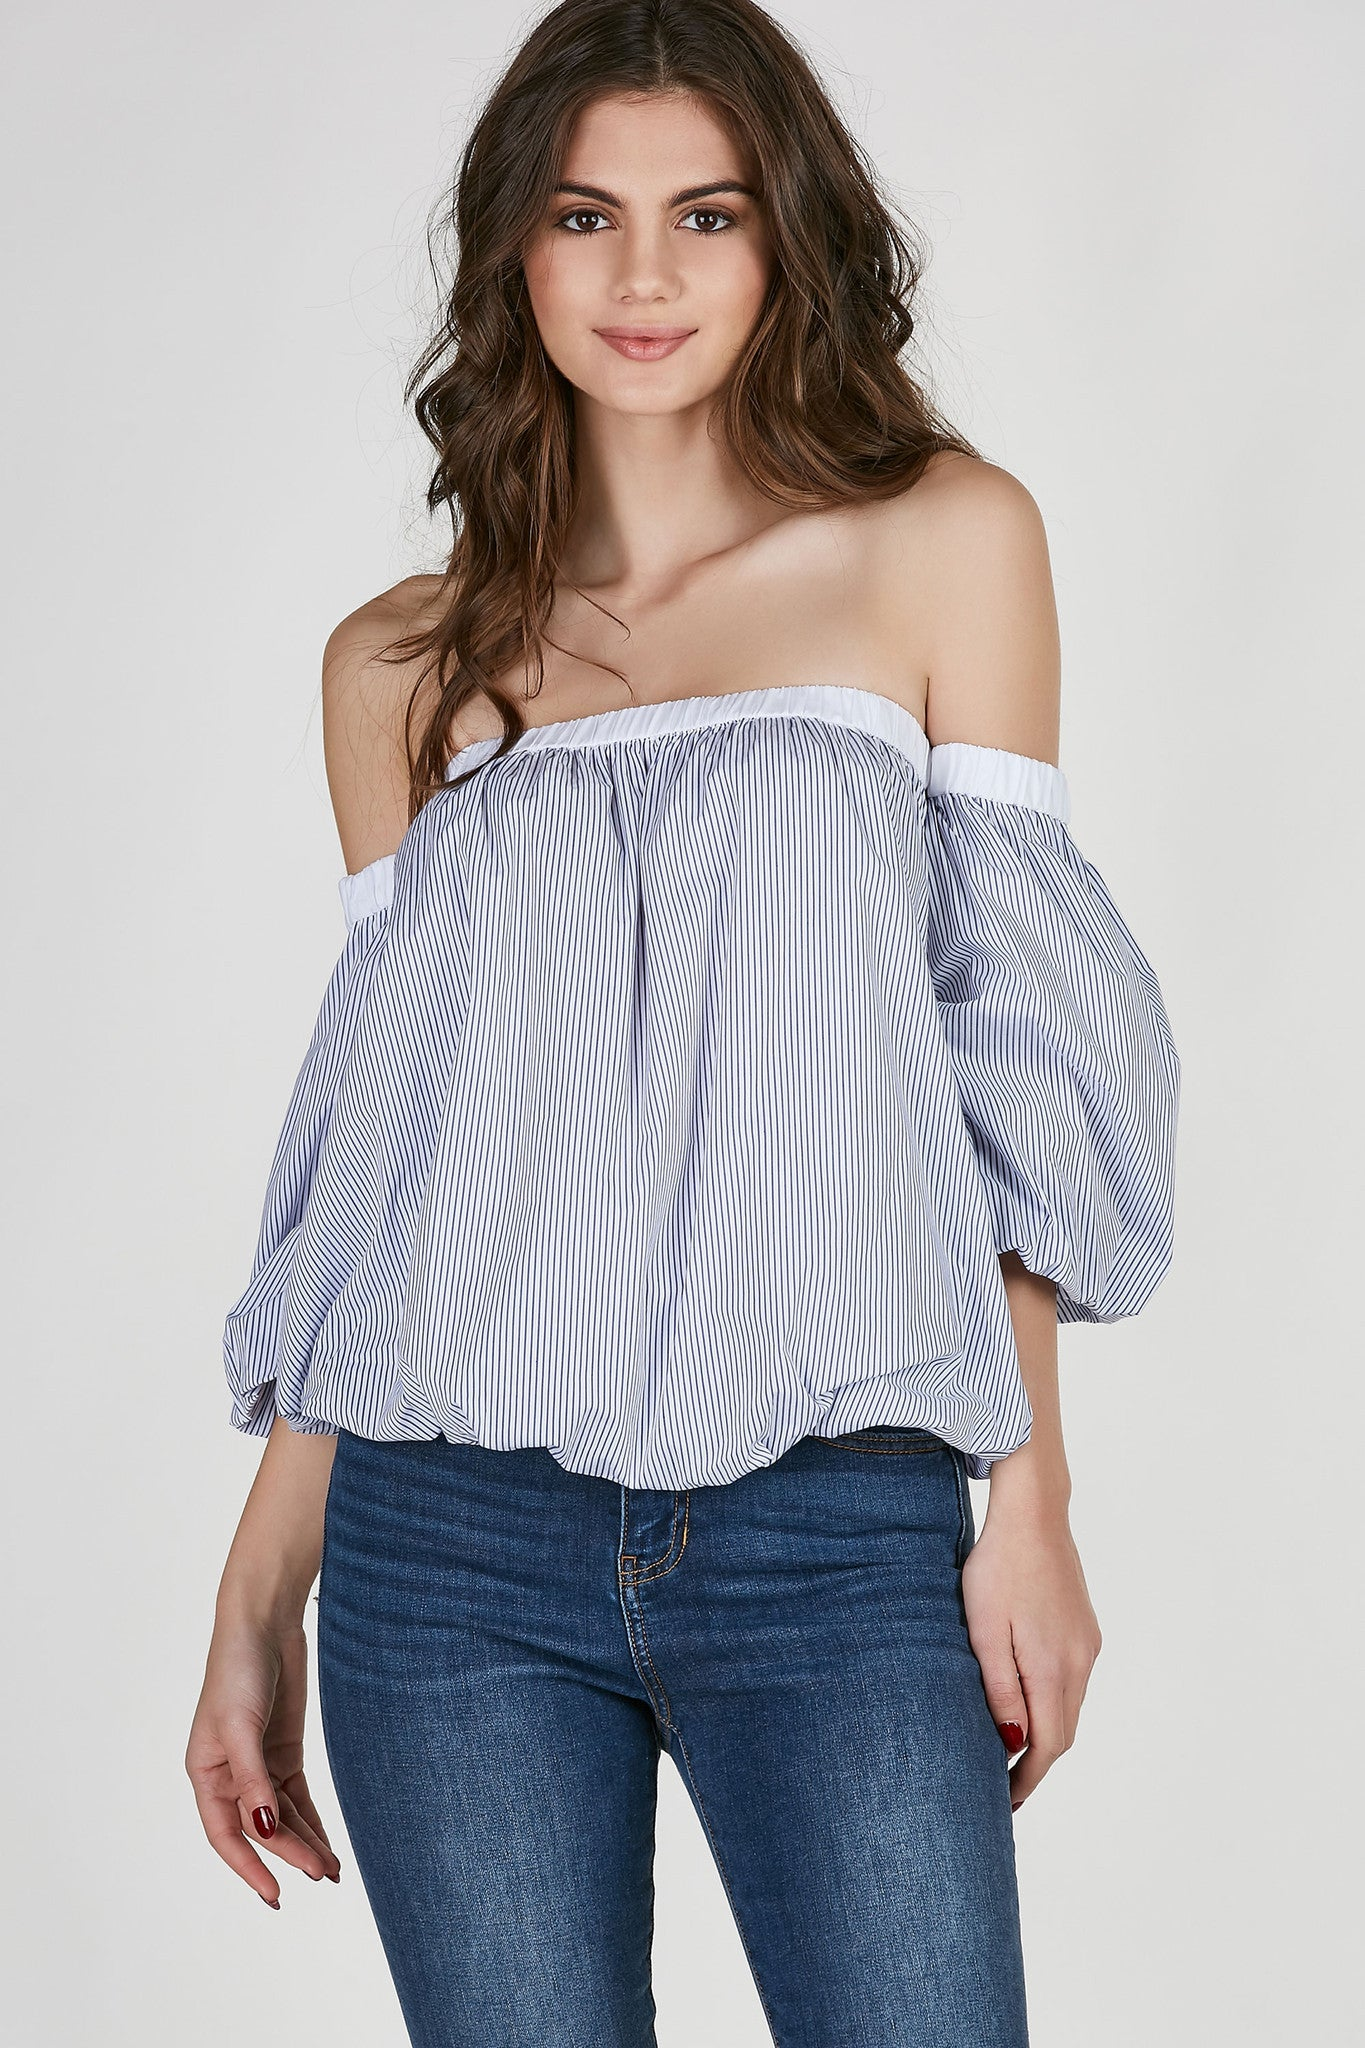 Striped off shoulder blouse with full lining. Contrast neckline with dimensional fit.